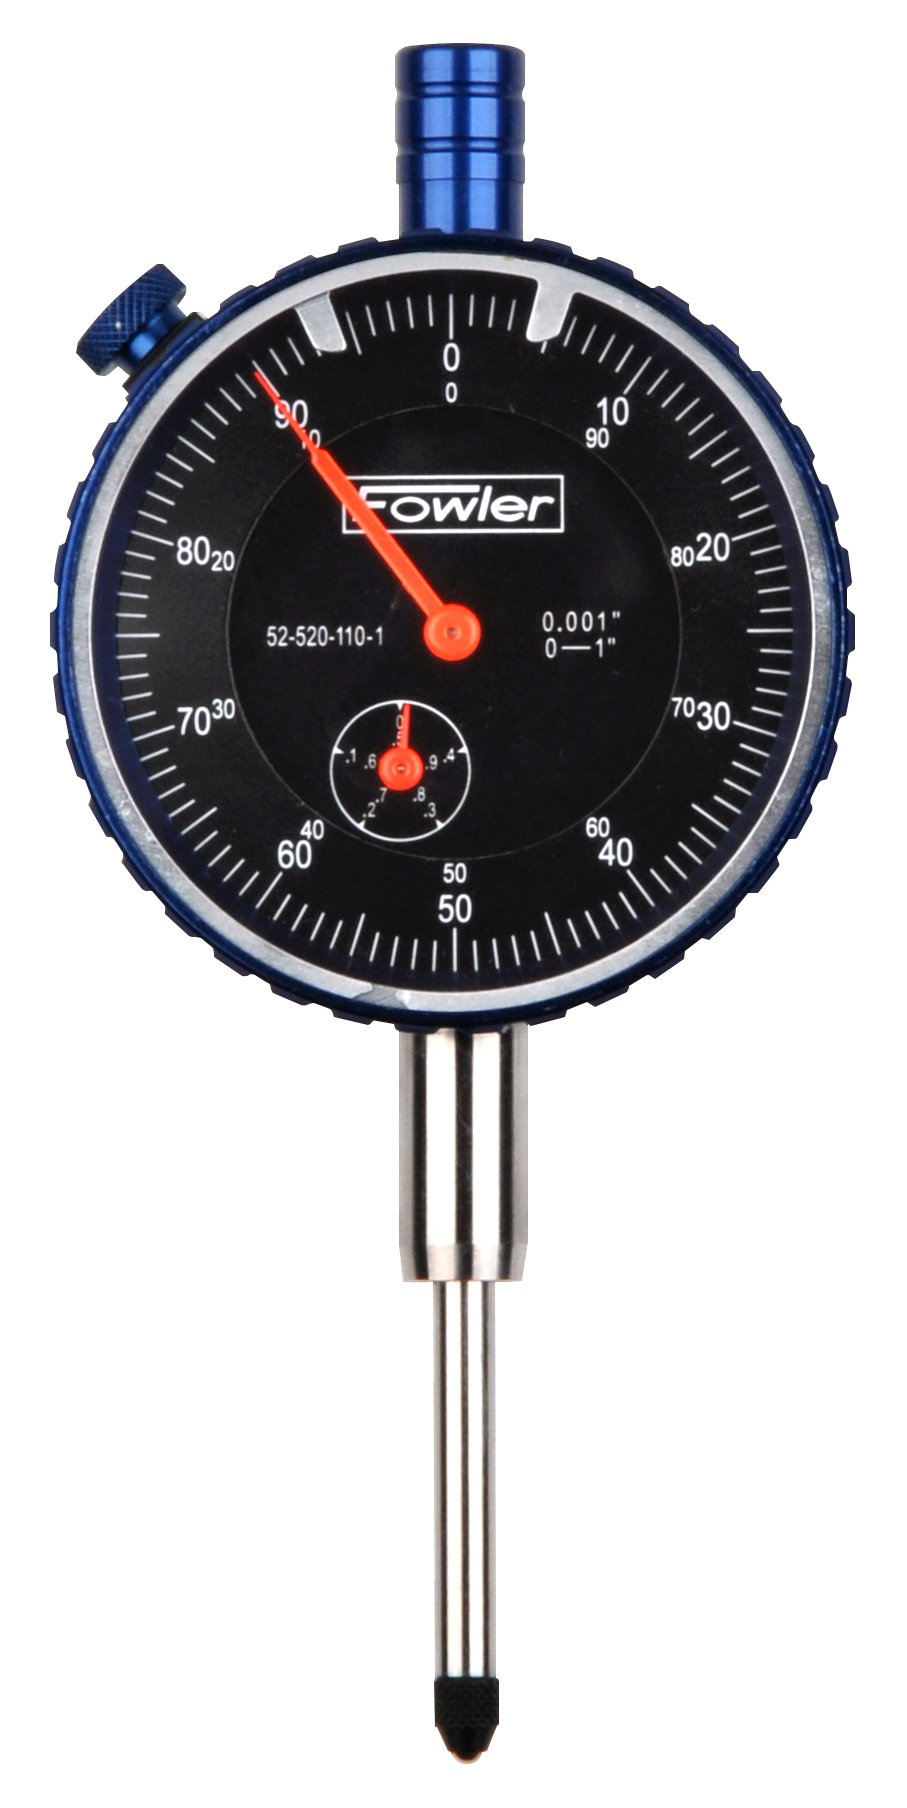 "Fowler Full One Year Warranty 52-520-110-1 1"" Brass Premium Dial Indicator, Black Face, 1'' Total Travel"